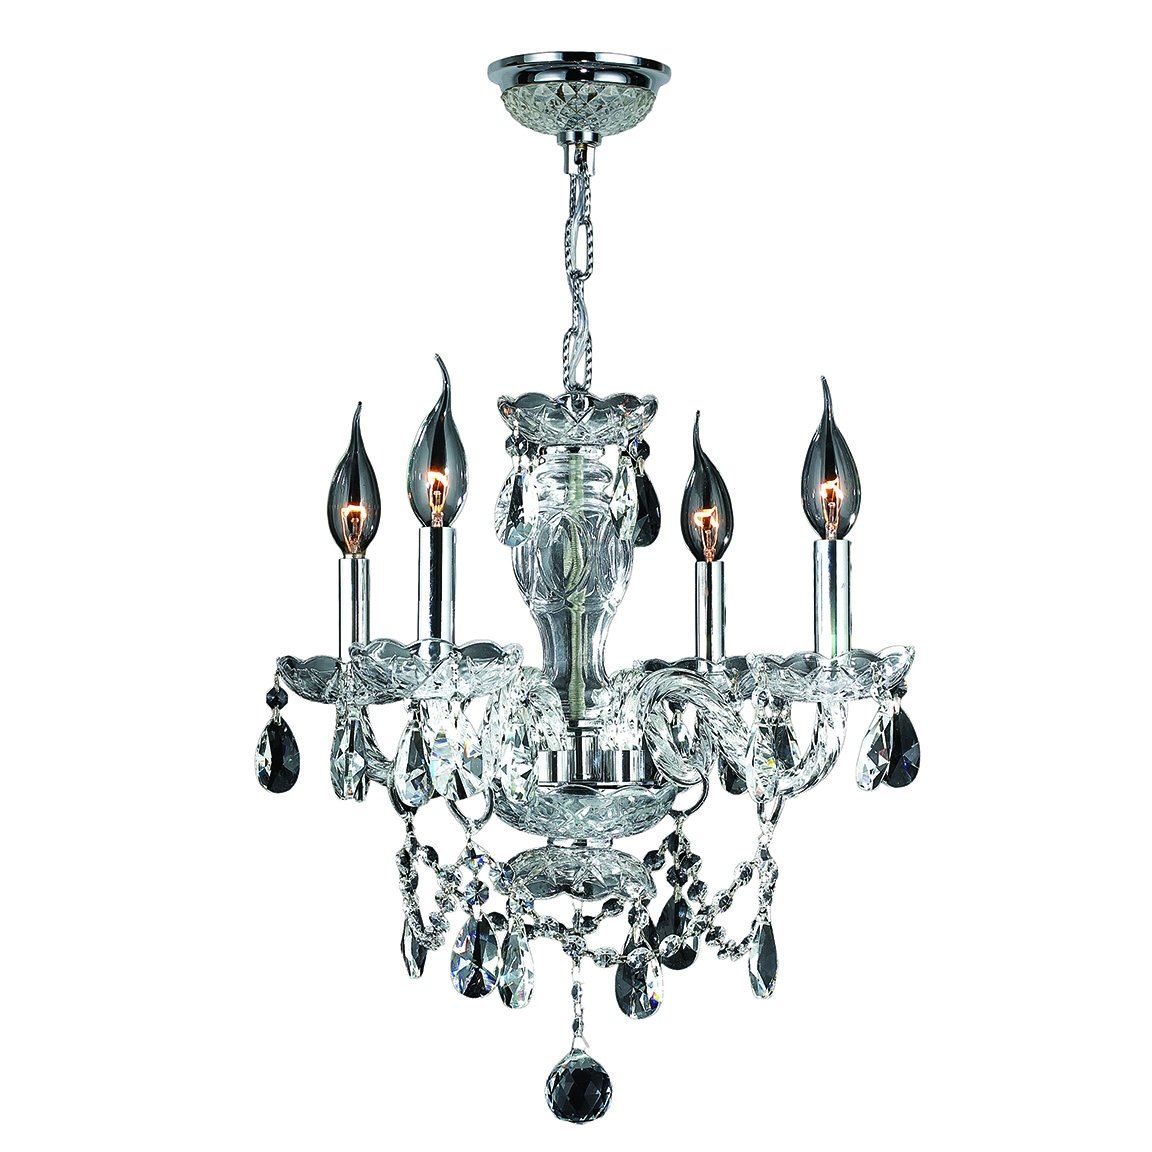 Worldwide Lighting Provence Collection 4 Light Chrome Finish and Clear Crystal Chandelier 17'' D x 18'' H Medium